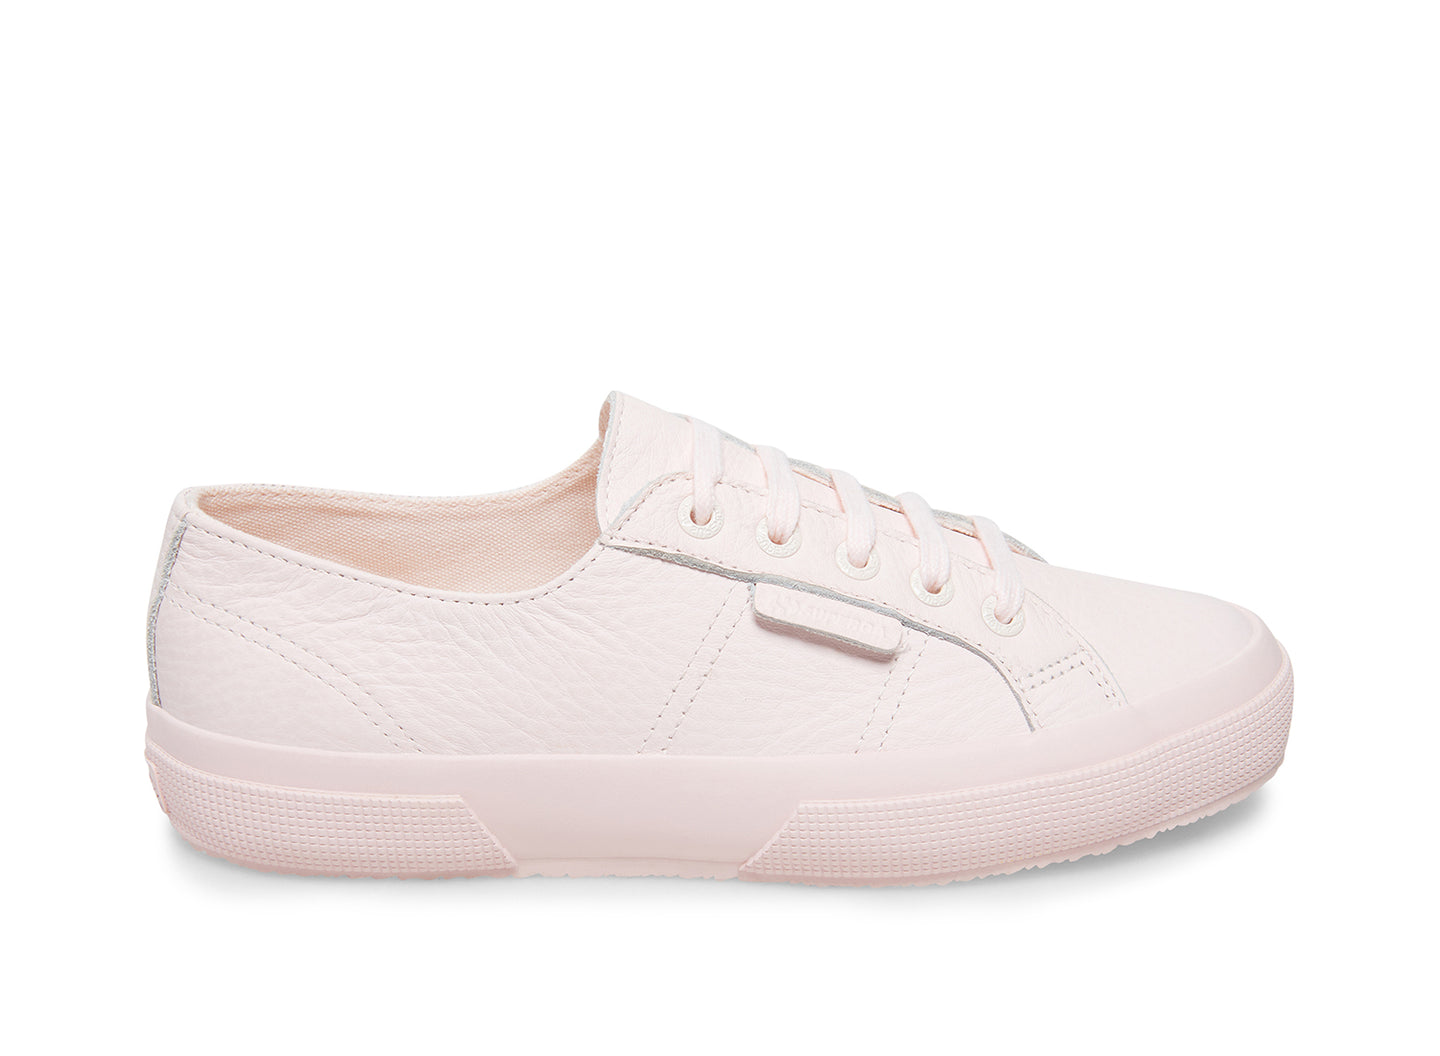 2750 TUMBLED LEATHERU PINK - Women's